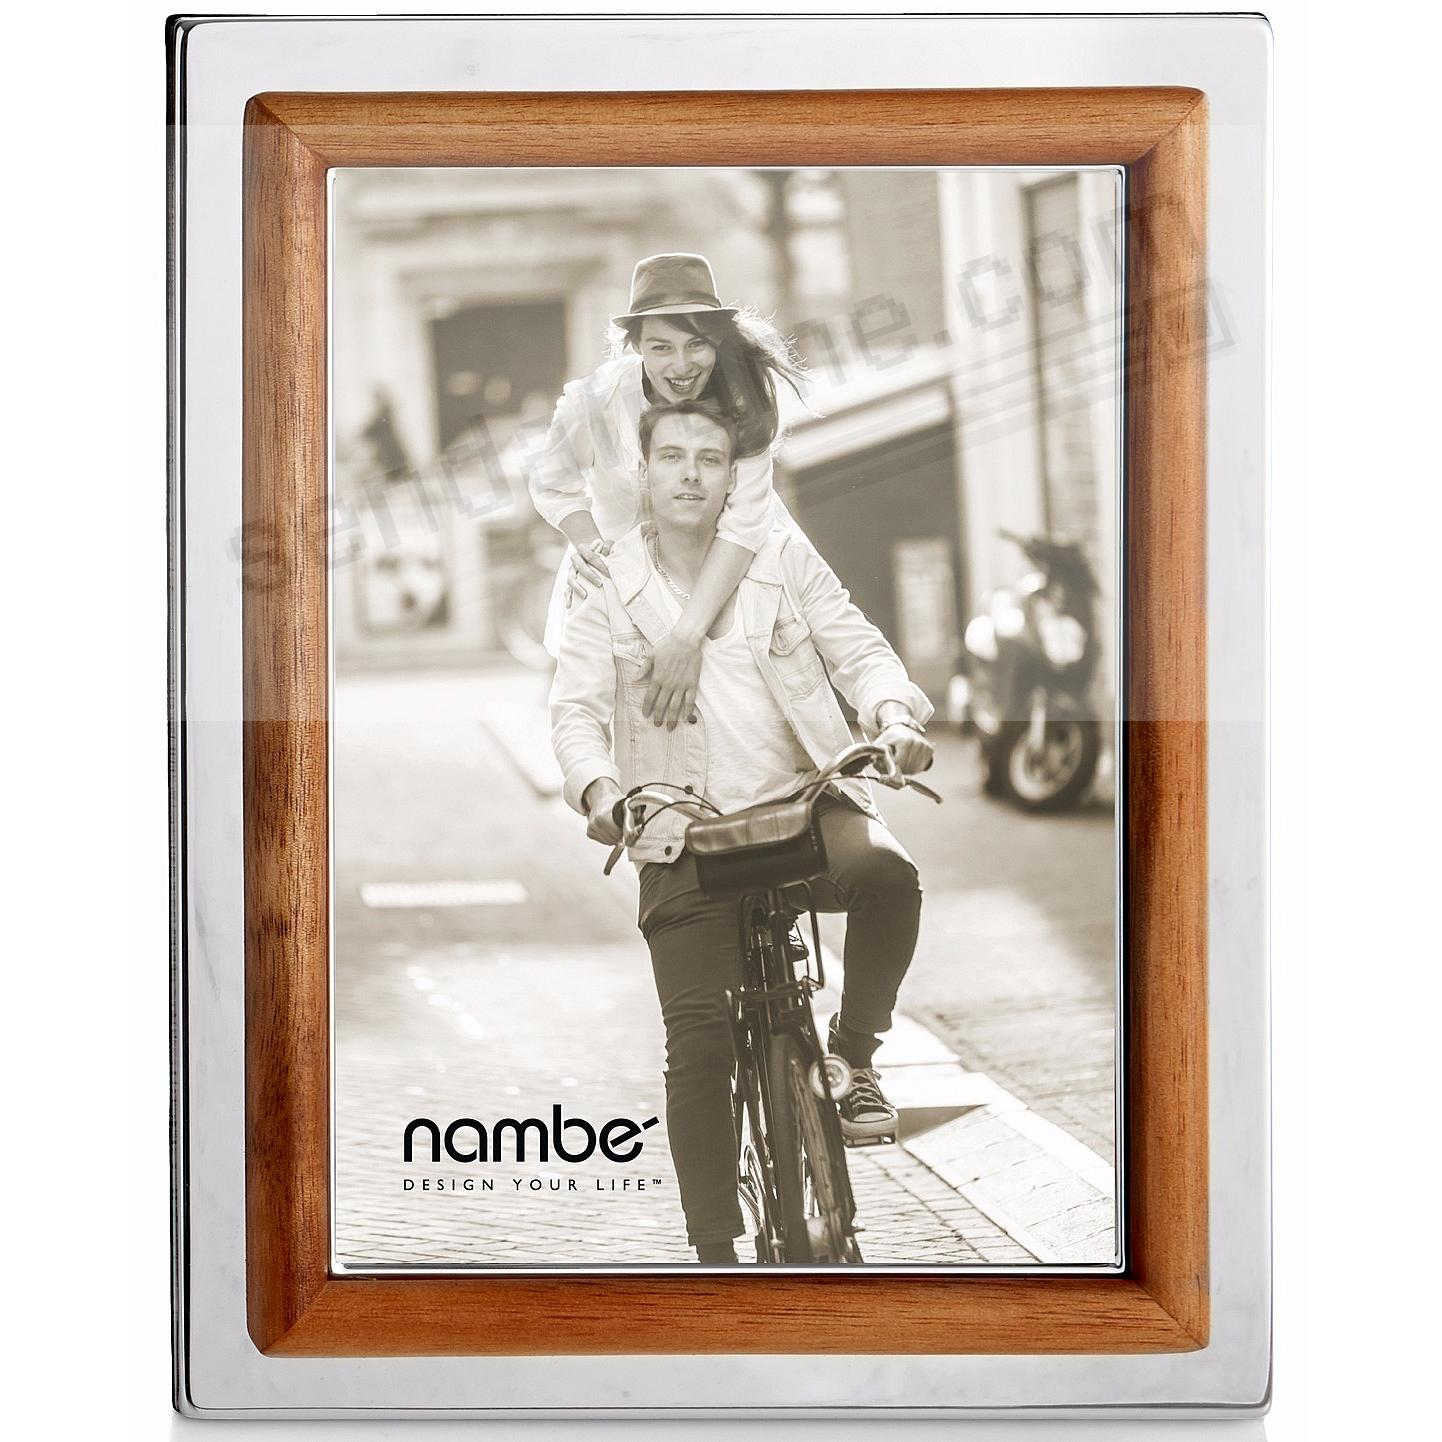 The HAYDEN 5x7 frame by Nambe